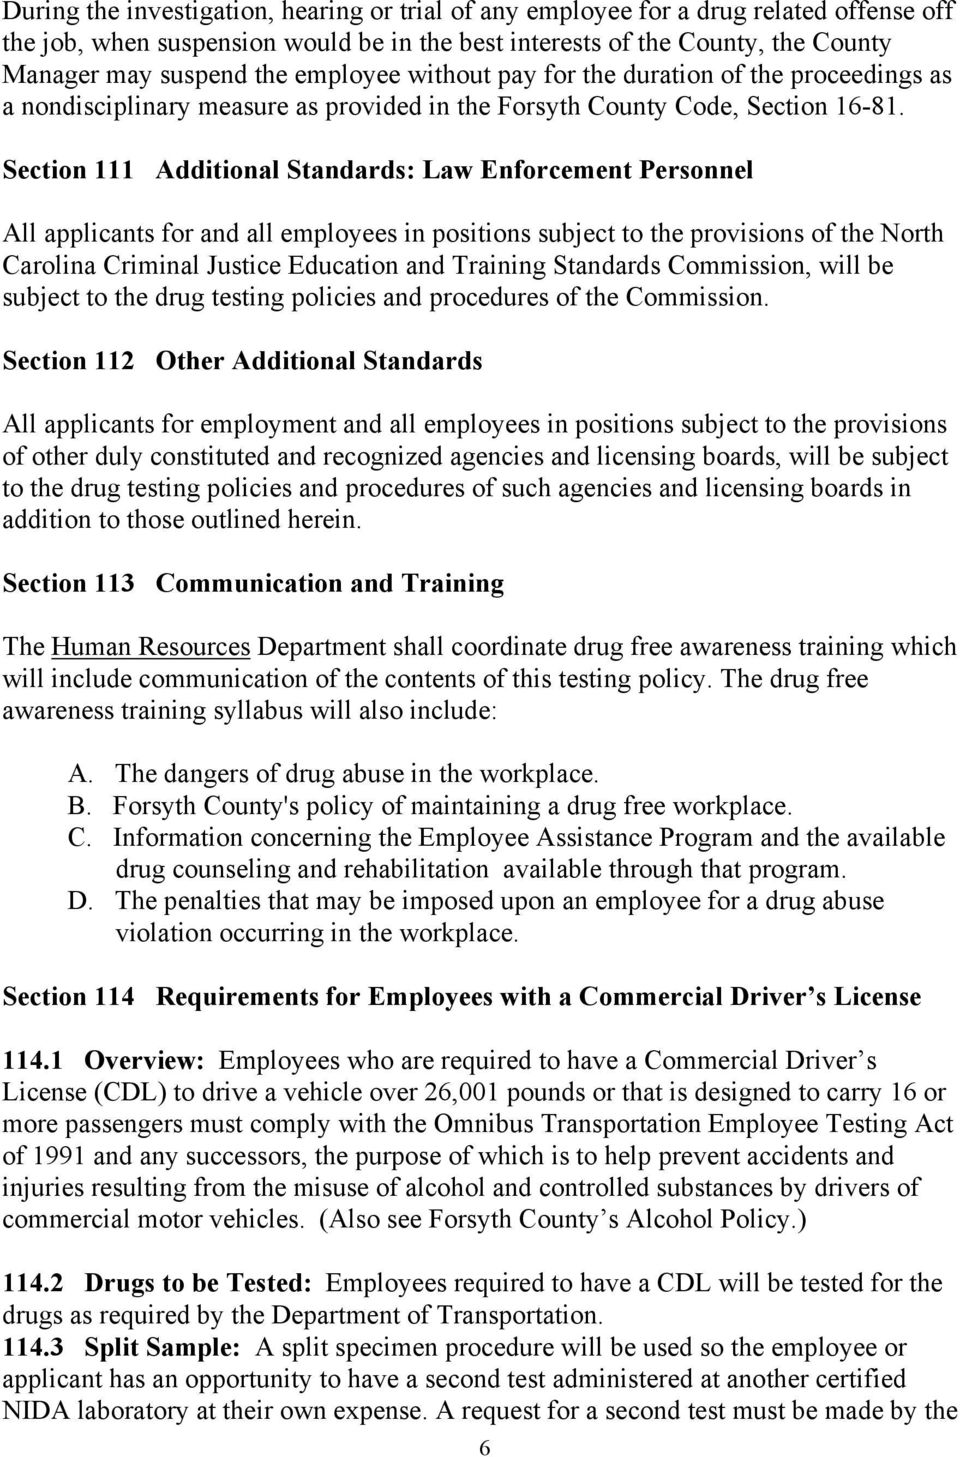 Section 111 Additional Standards: Law Enforcement Personnel All applicants for and all employees in positions subject to the provisions of the North Carolina Criminal Justice Education and Training